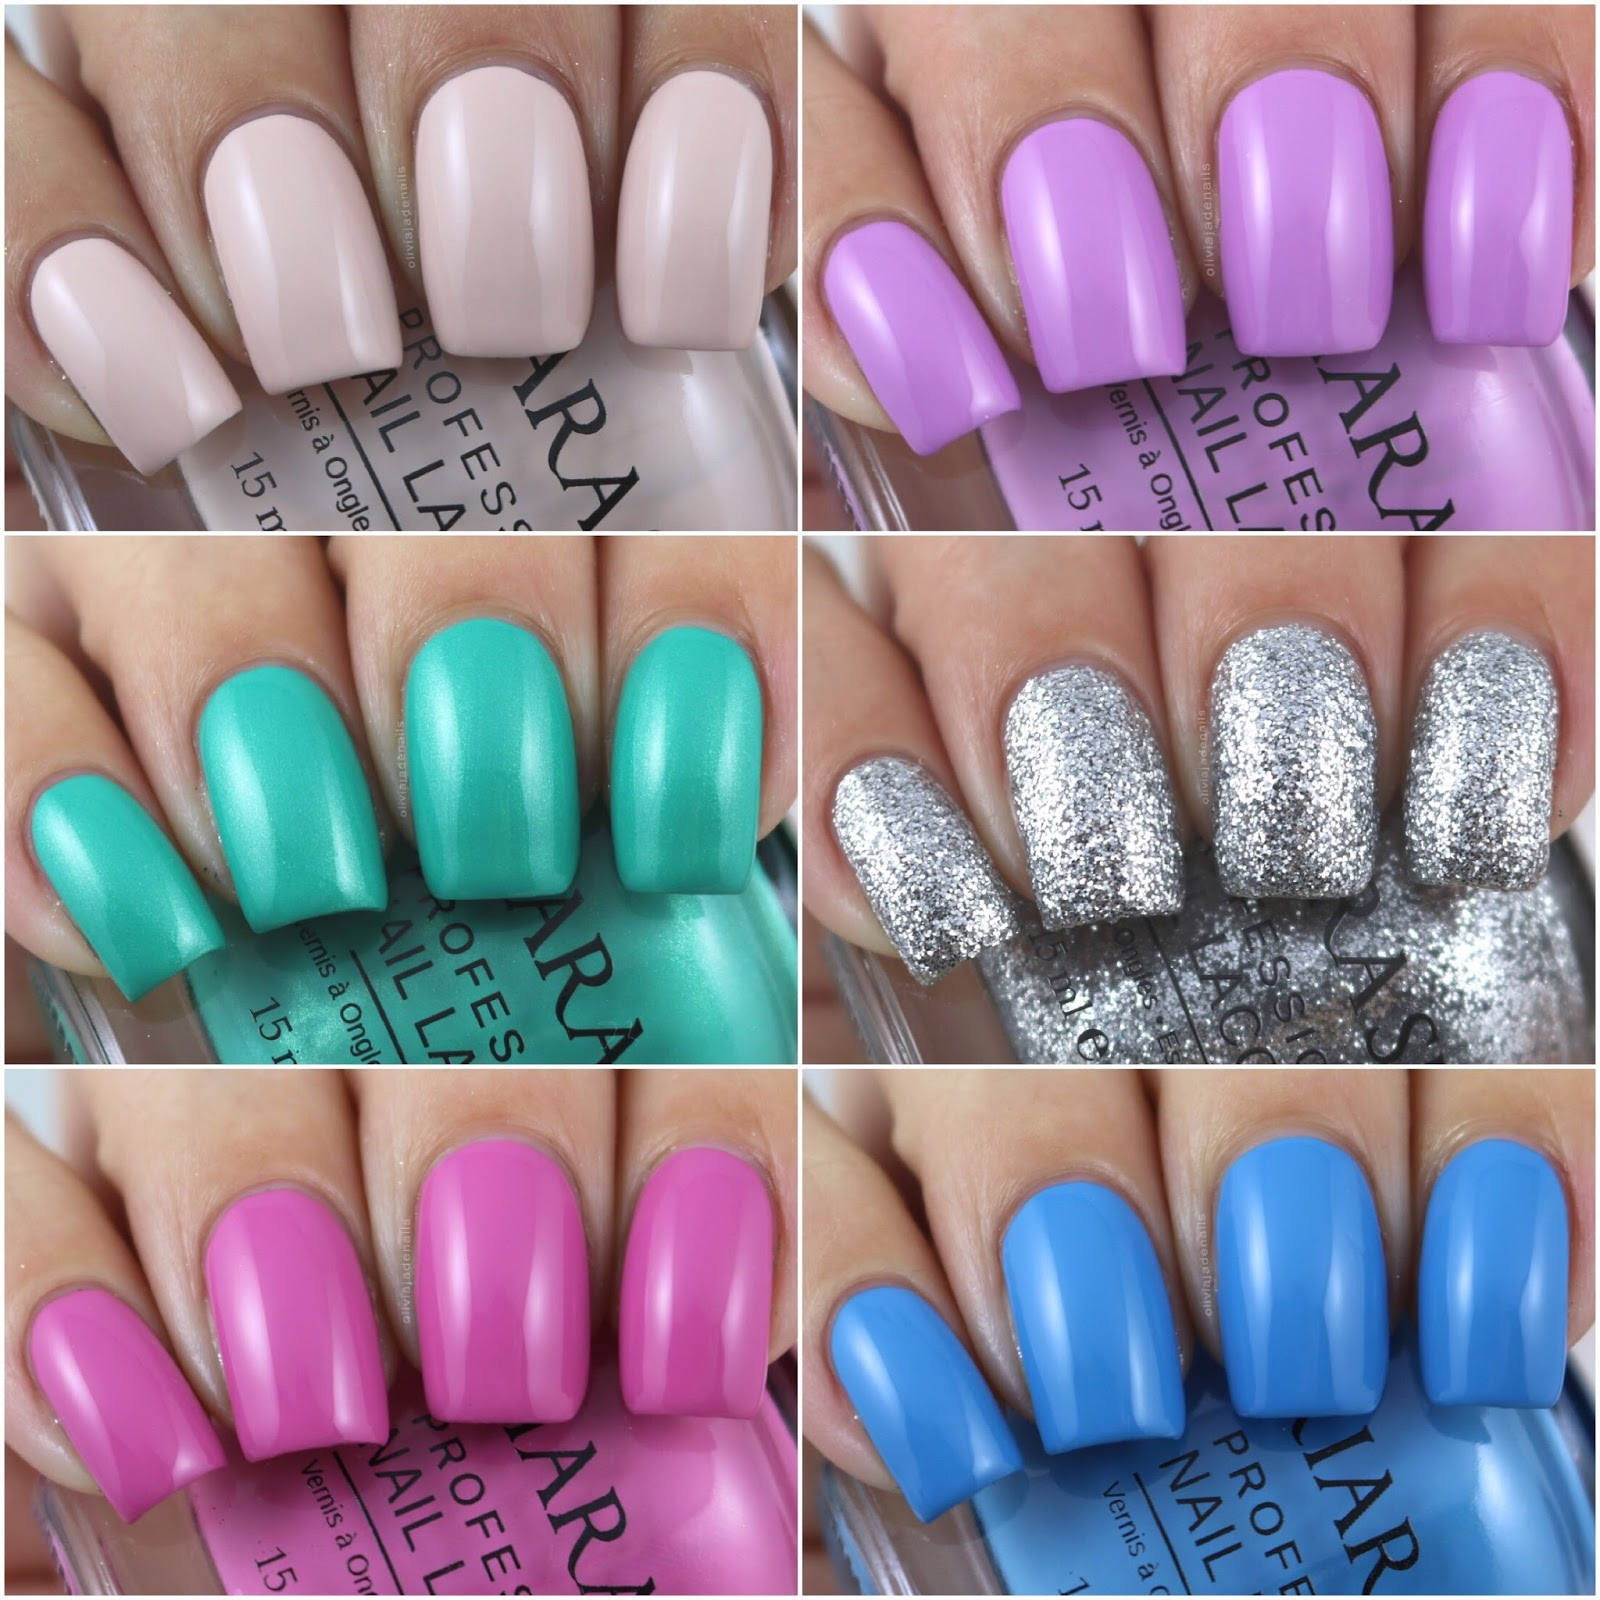 Olivia Jade Nails: Kiara Sky Professional Nails Mixed Swatches & Review